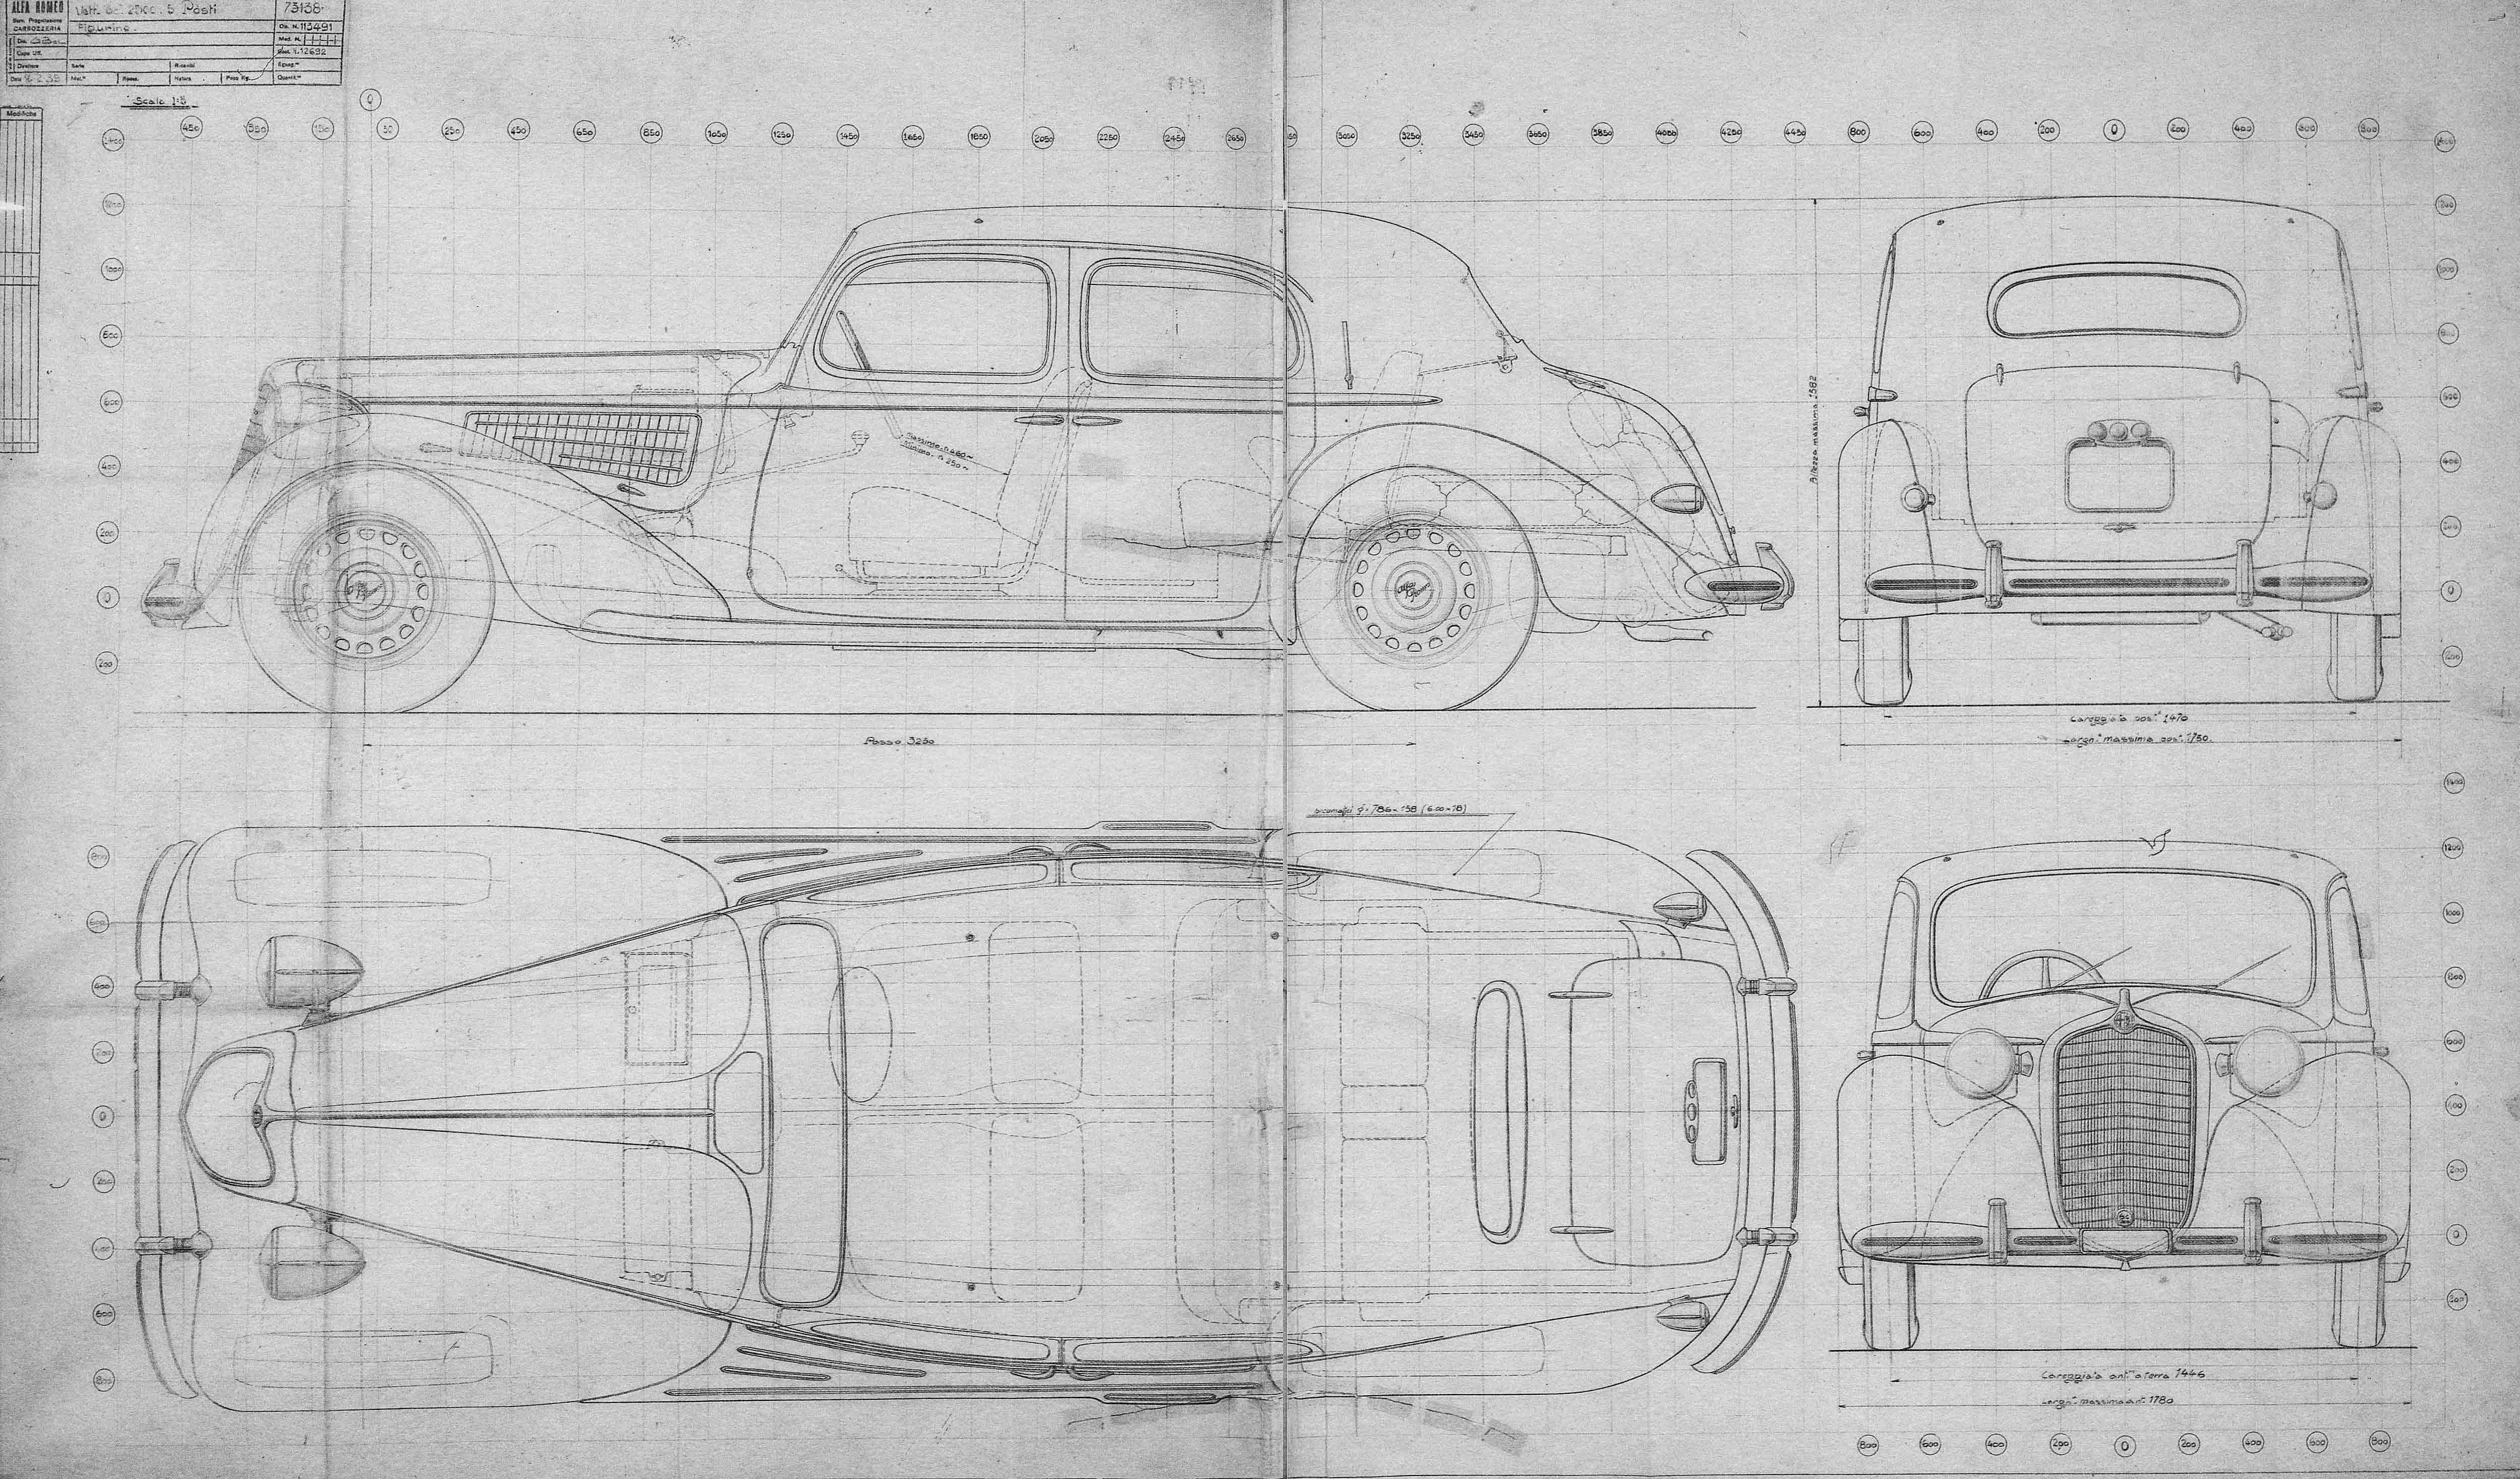 Alfa Romeo 6C 2500 blueprint